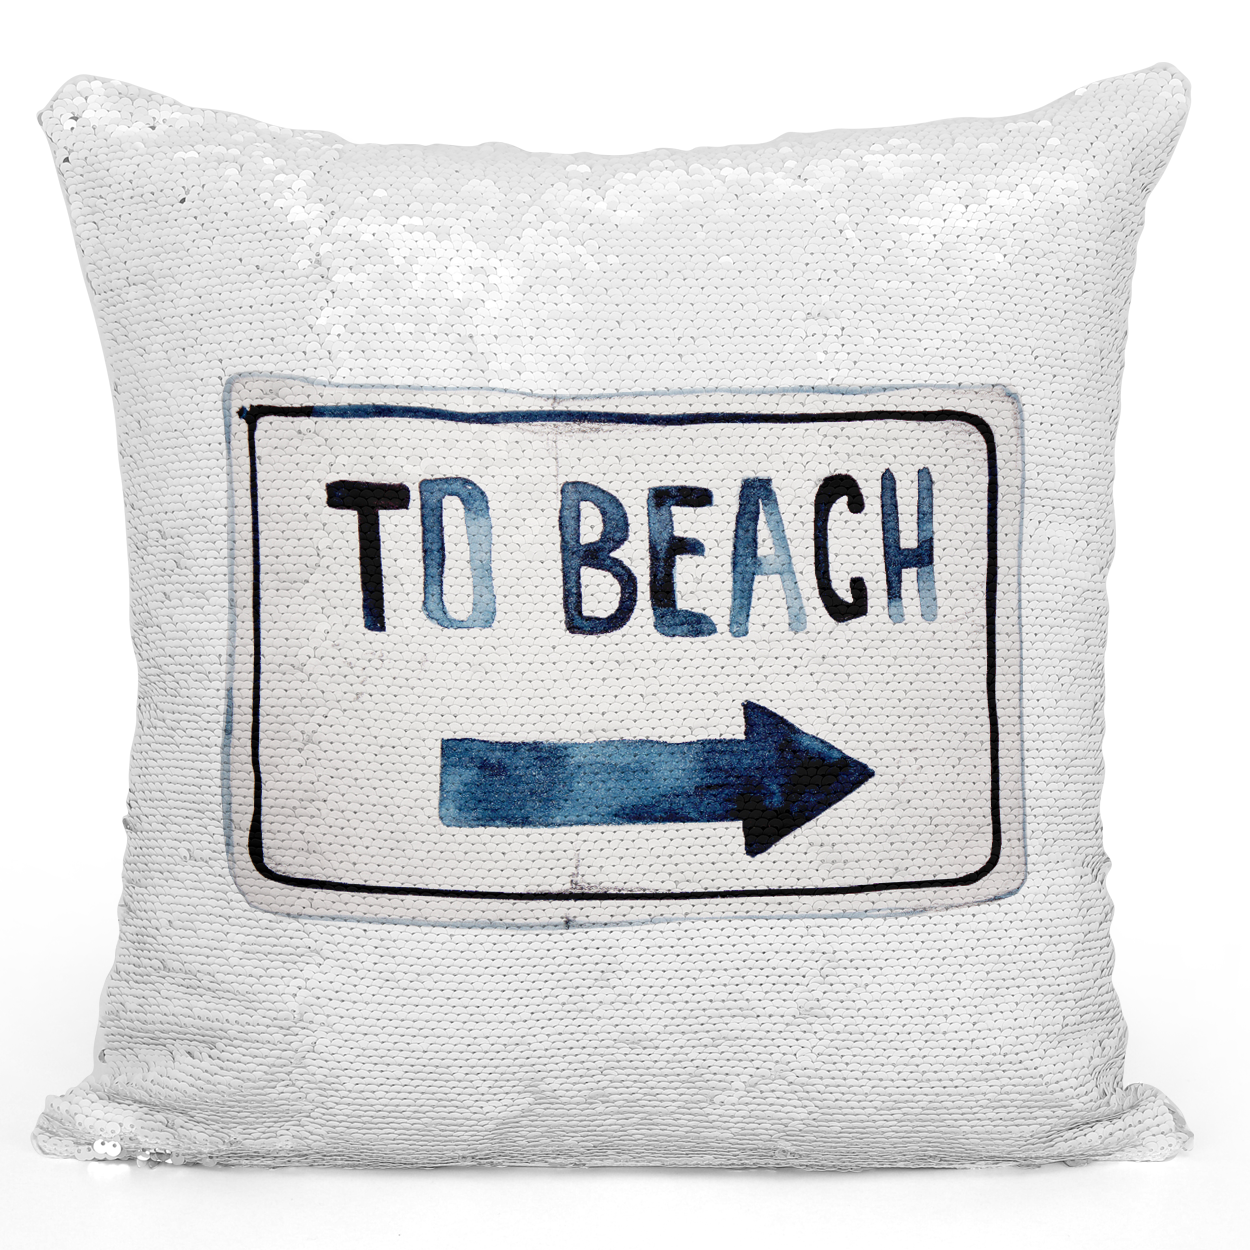 Sequin Pillow Magic Mermaid Throw Pillow To Beach Lovely Summer Beach House Vacation Home Pillow - Durable White 16 x 16 inch Square Livingroom Sofa Couch Pillow Loud Universe